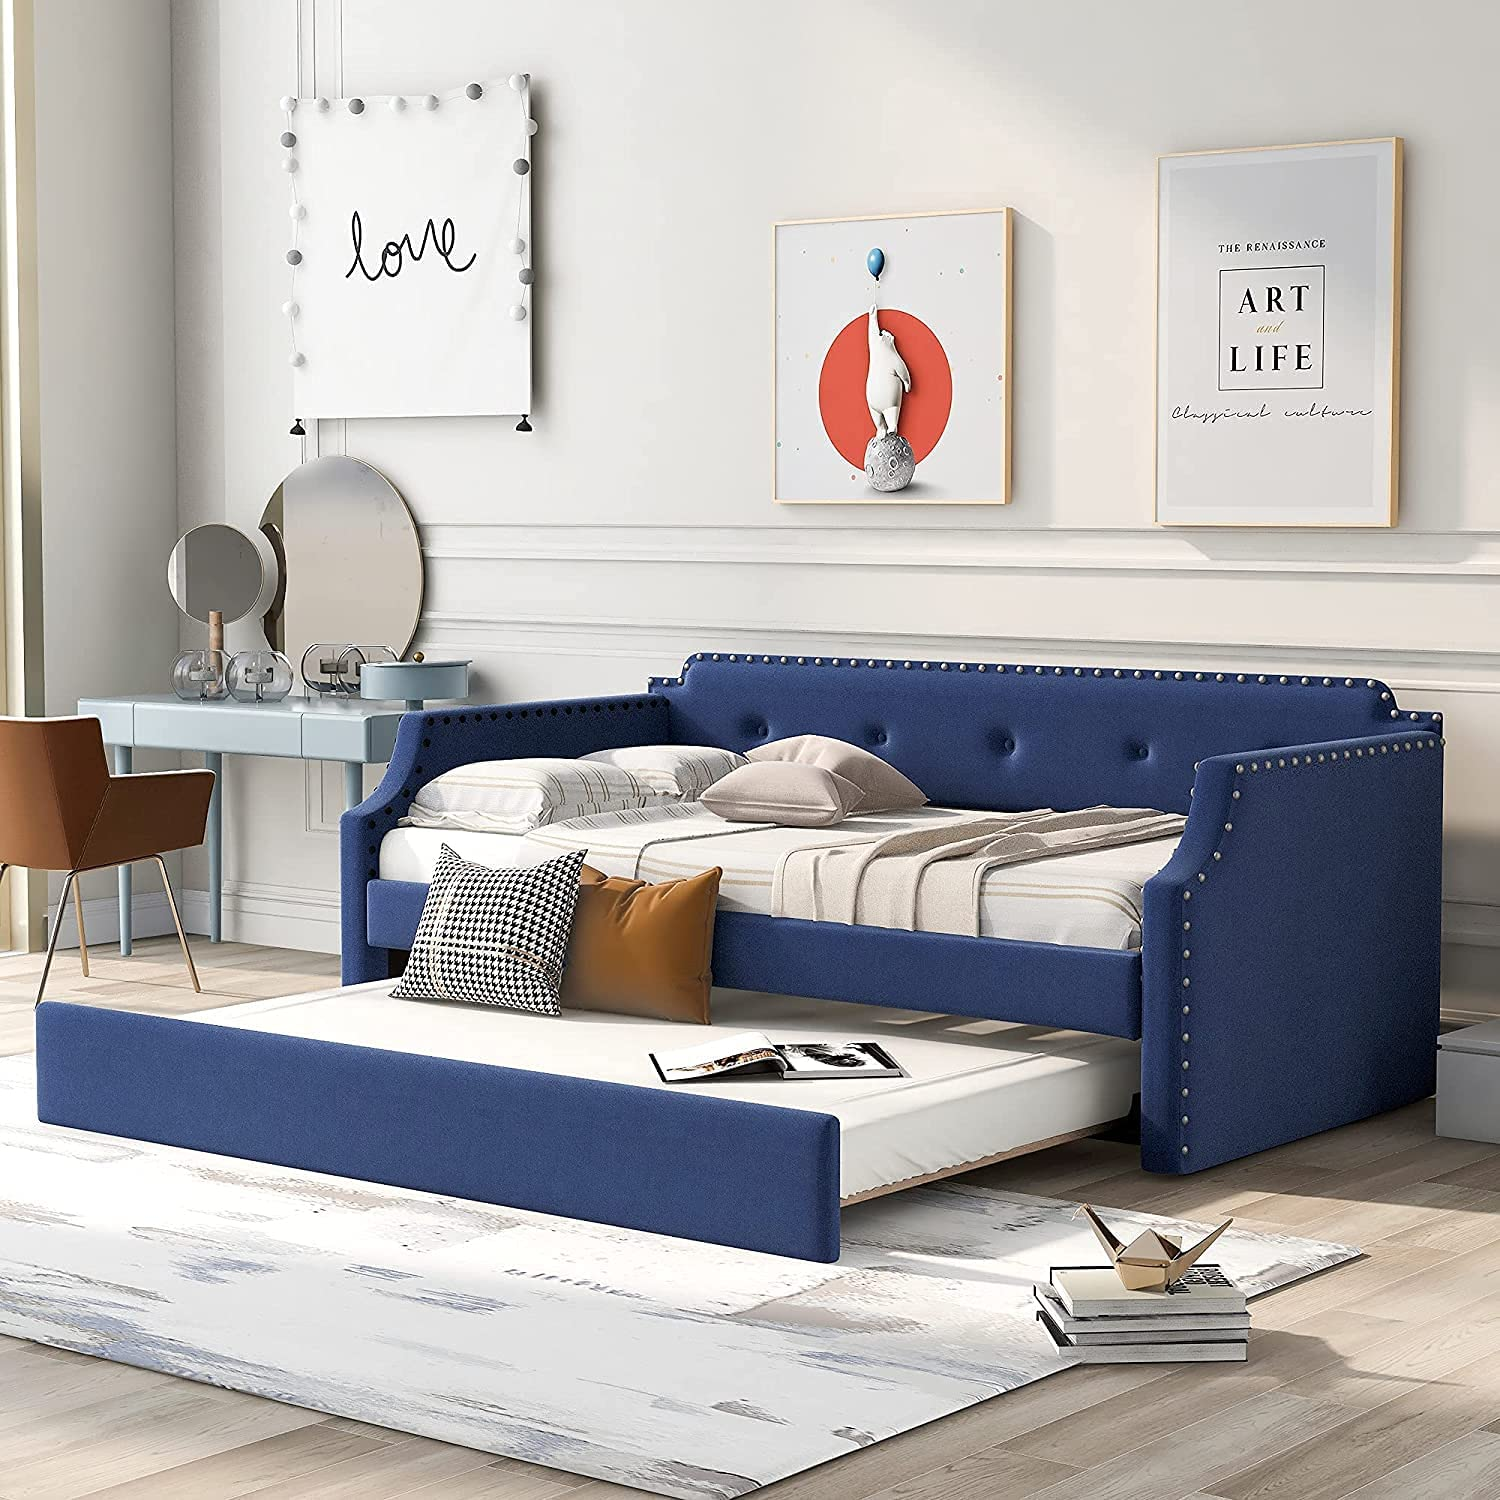 Now on sale YICHENHAOYUAN Seattle Mall Sofa Twin Upholstered rockjame Wood Slat Daybed